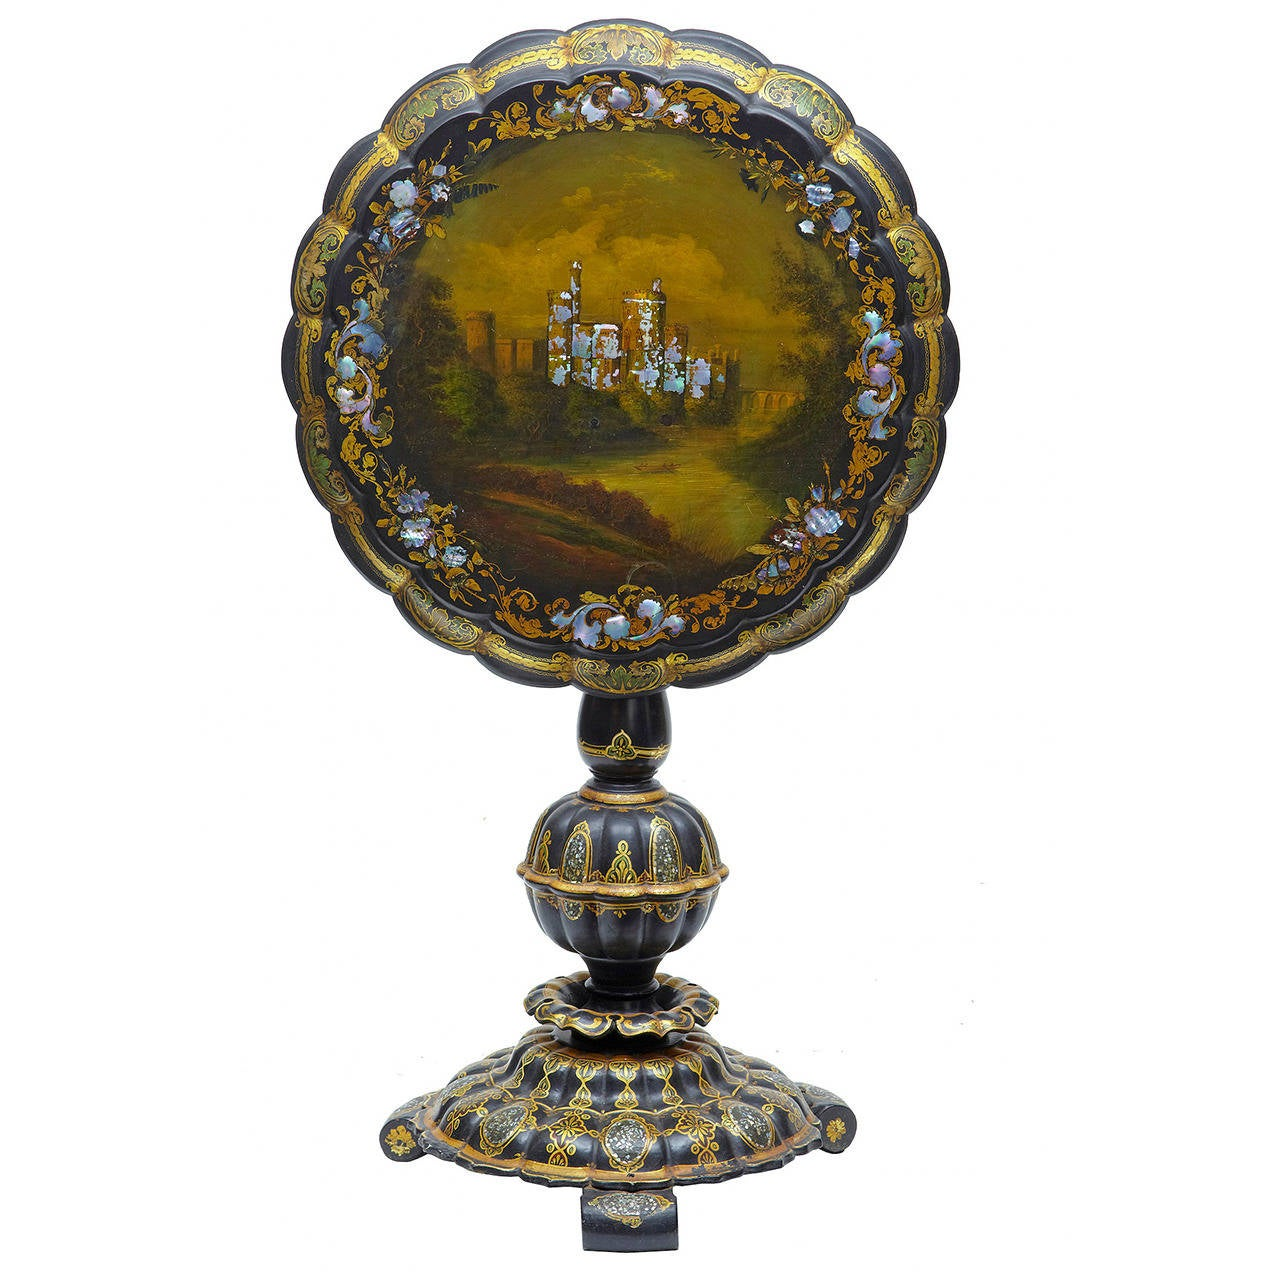 19th Century Papier-Mâché and Painted Mother-of-pearl Inlaid Tilt-Top Table